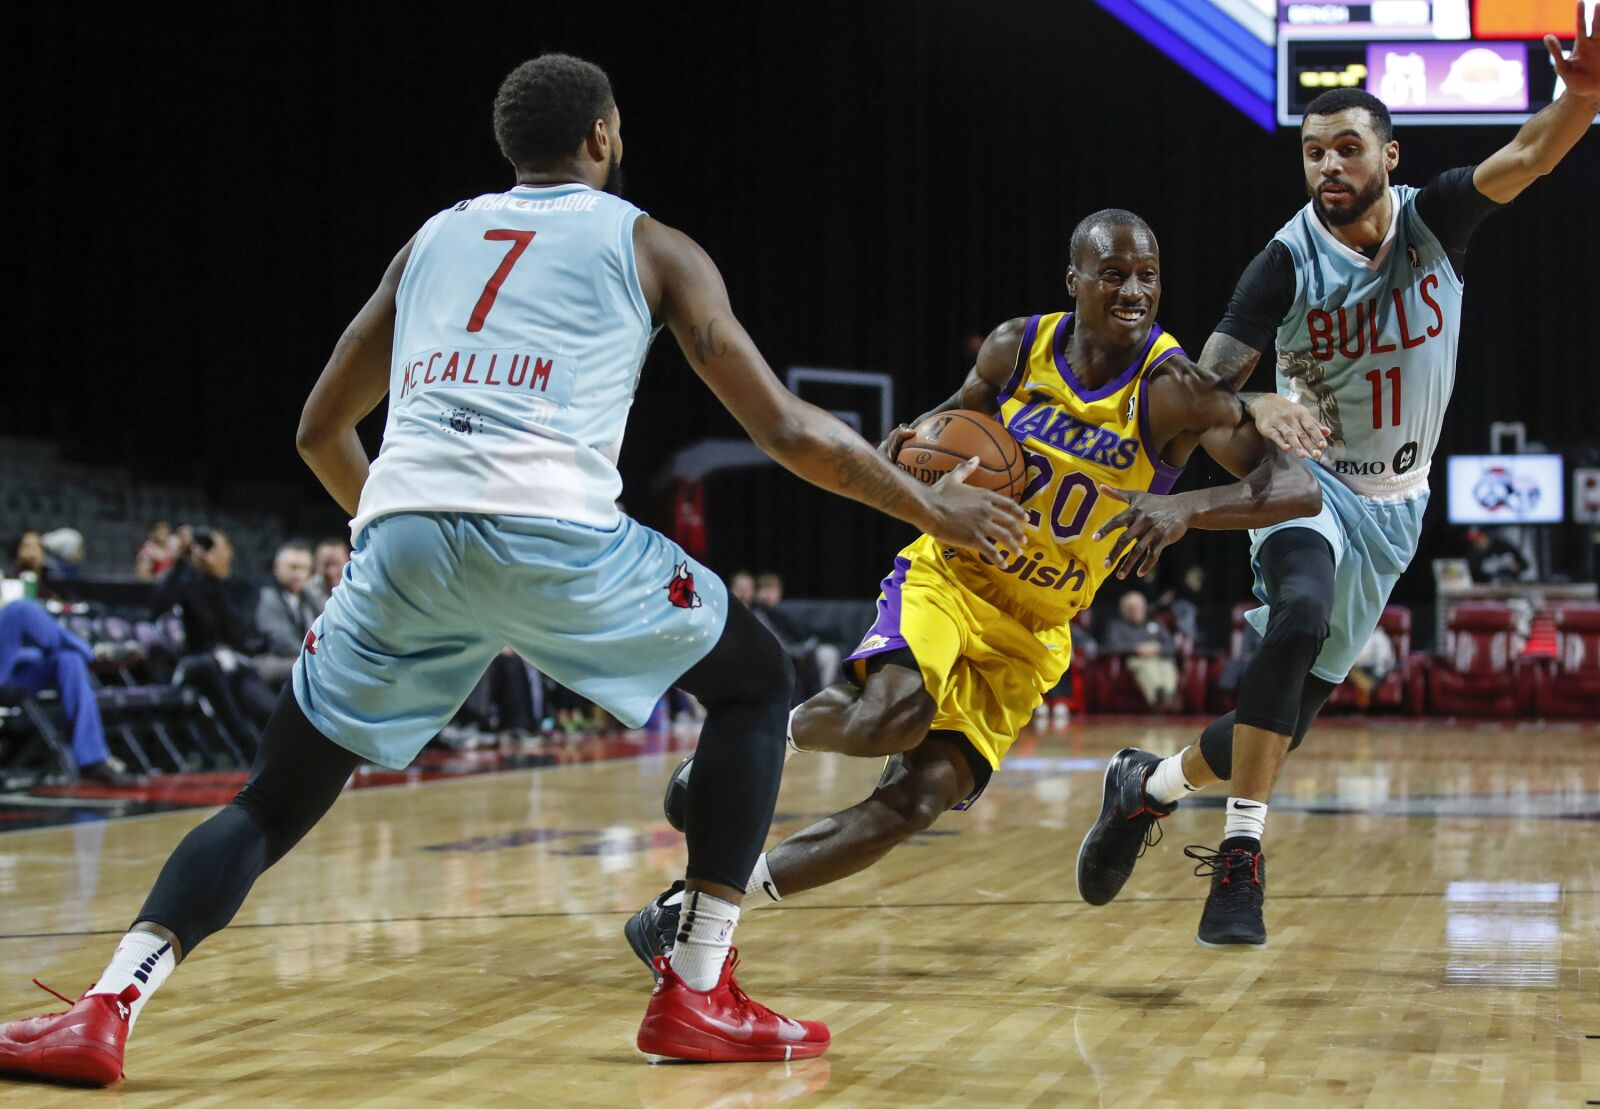 South Bay Lakers: Playing with heart, winning games